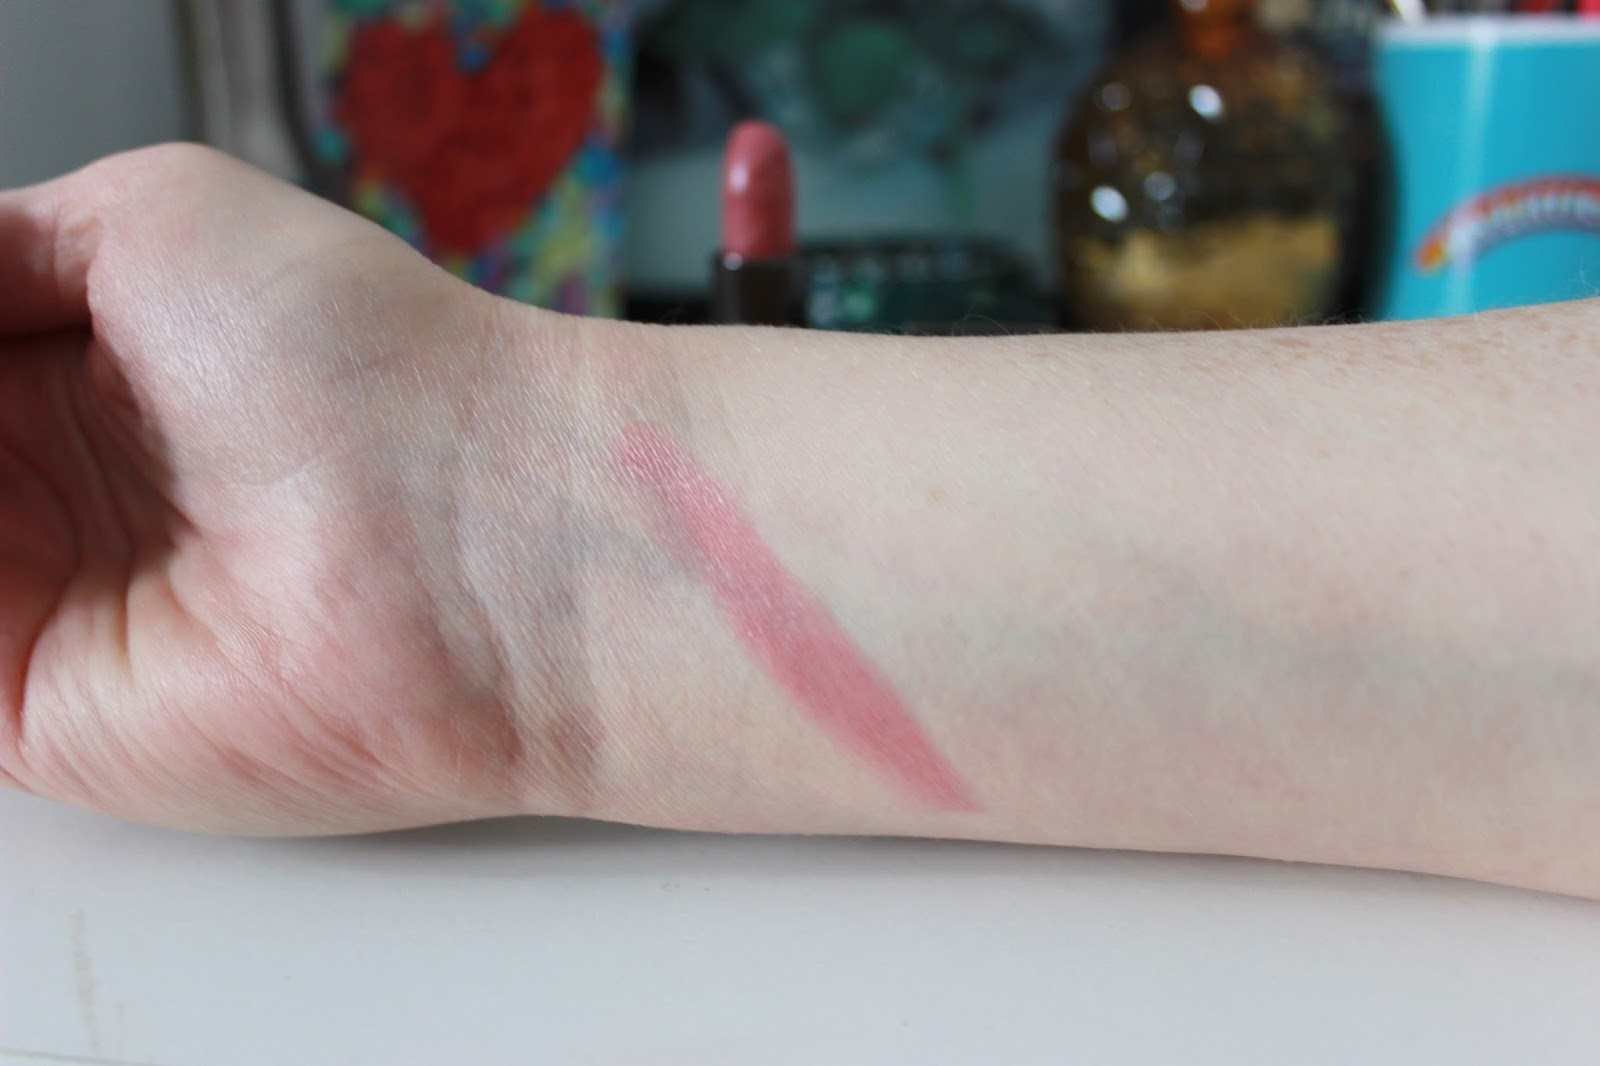 Burberry Kisses lipstick, 033 Rose Pink swatched